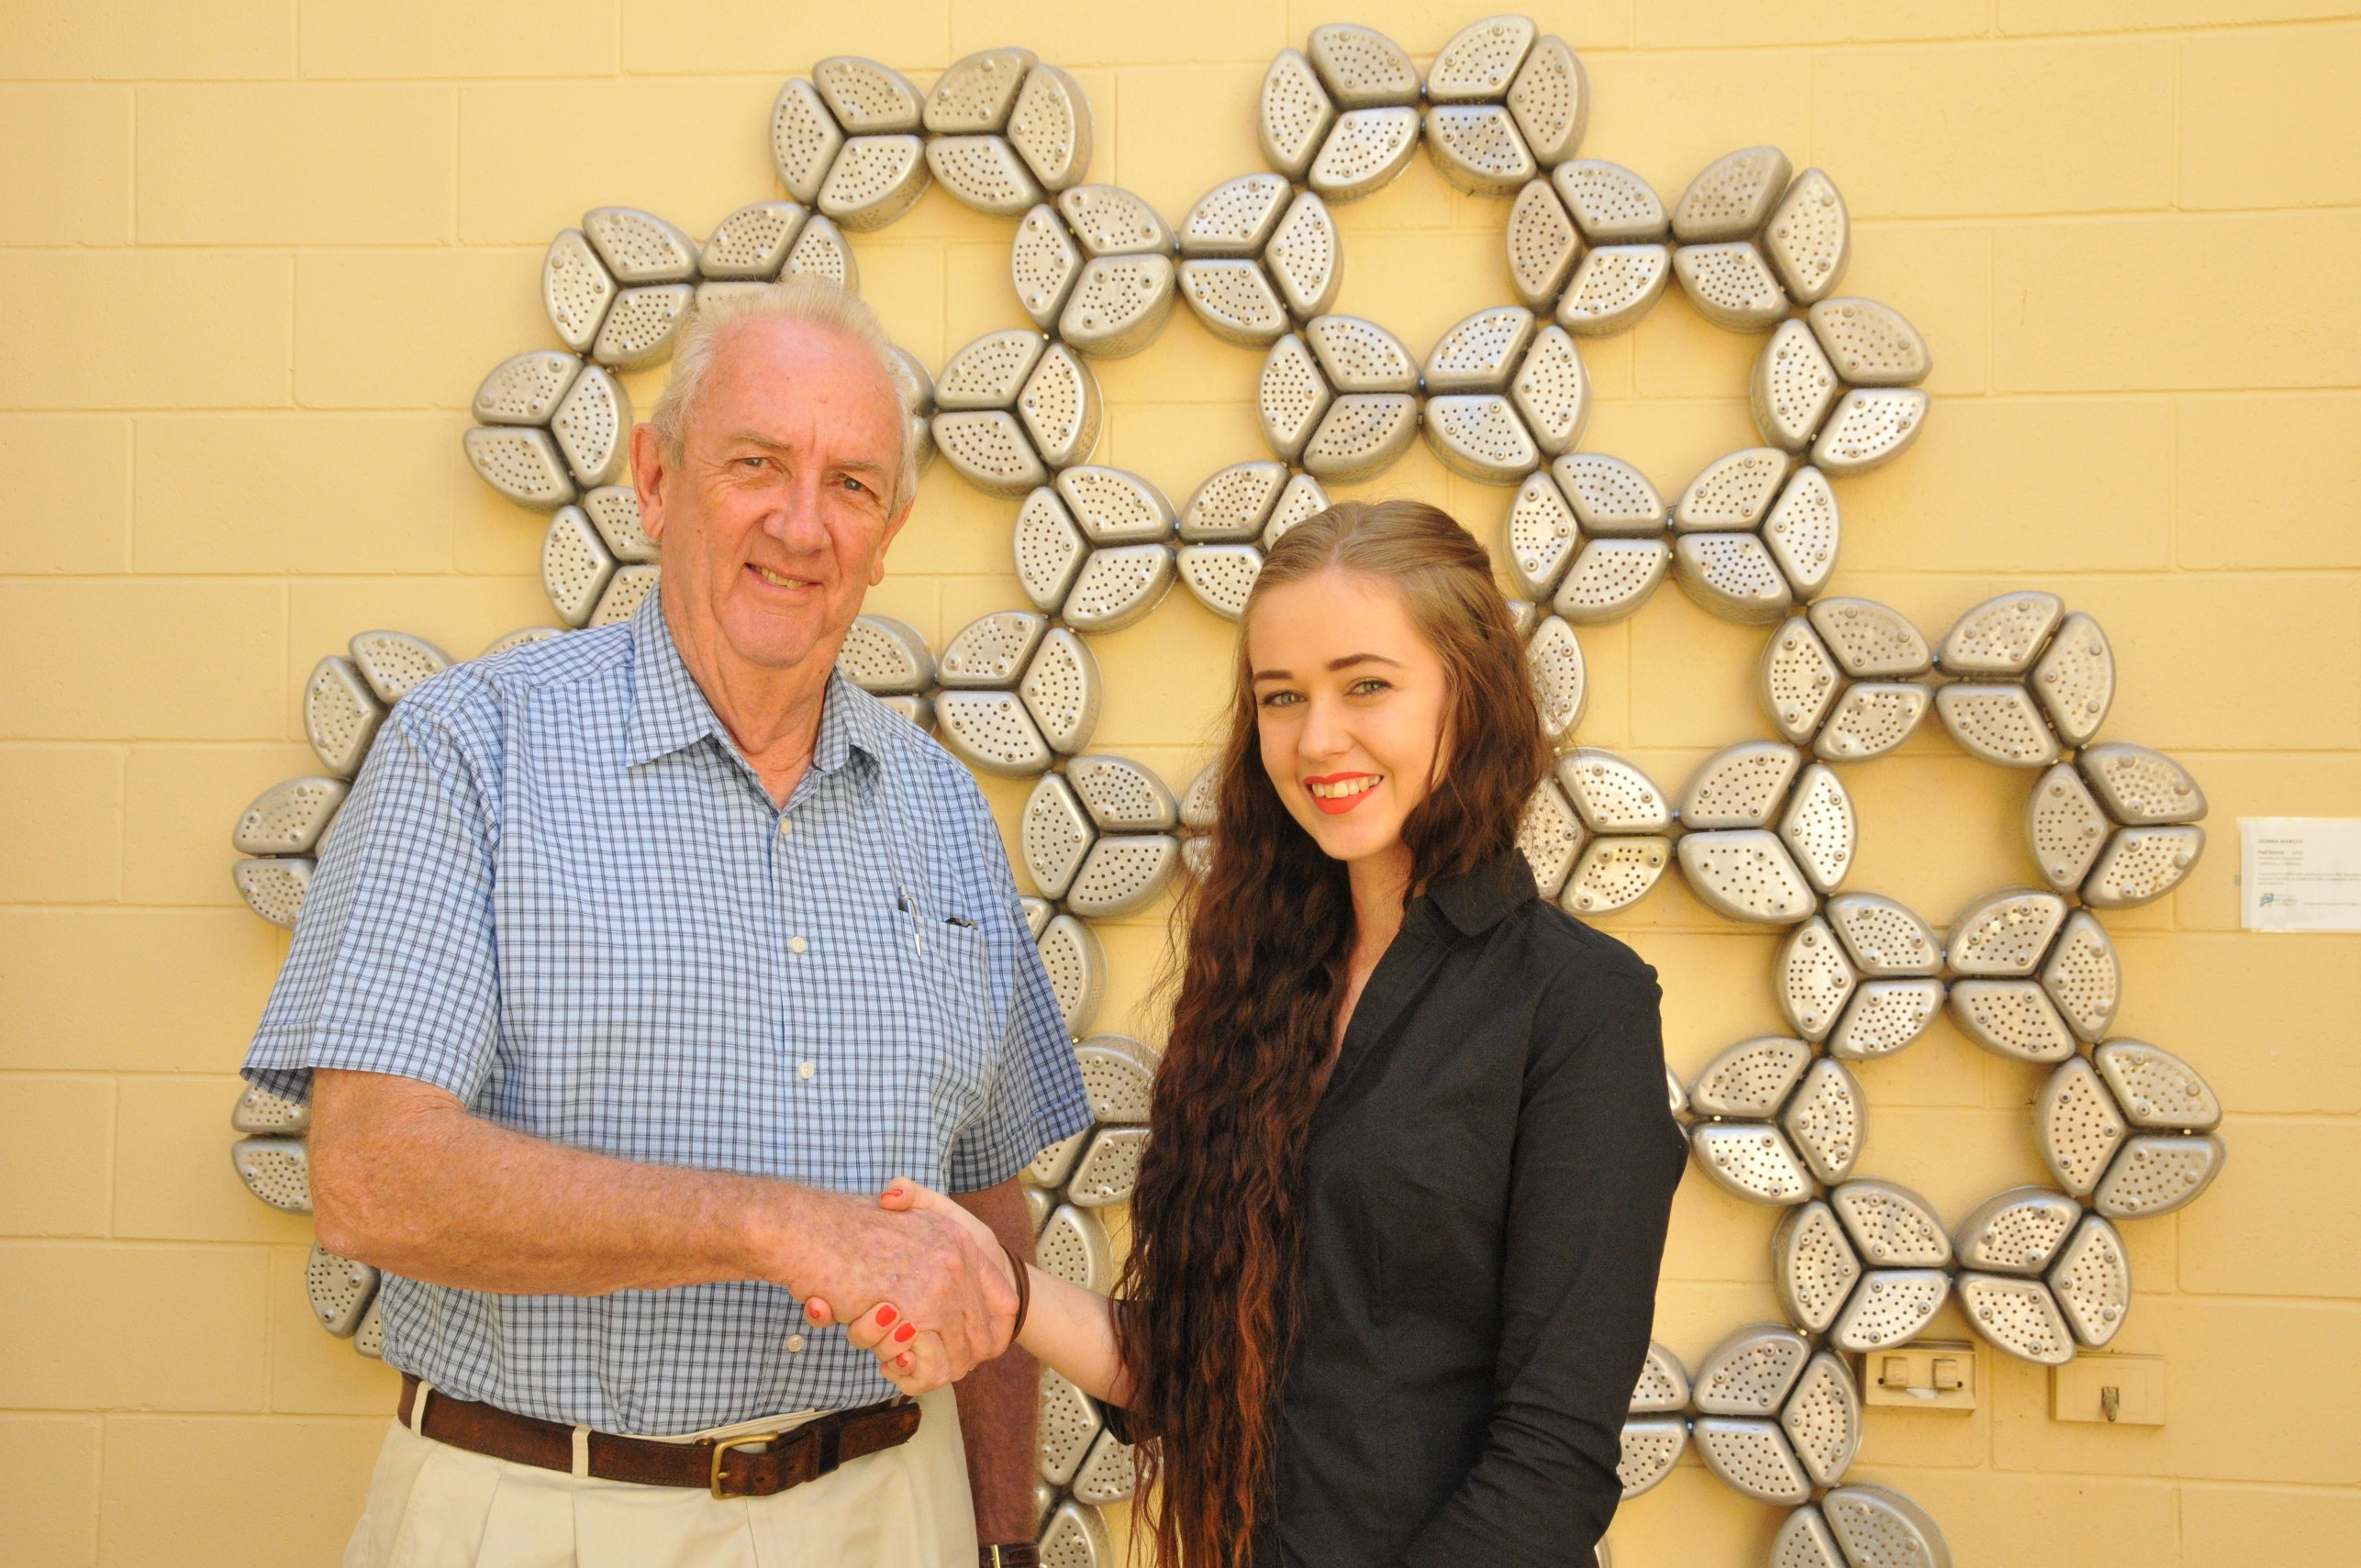 Congratulations To Cassandra Paddick For Obtaining The 2015 Golding Visual Arts Bursary